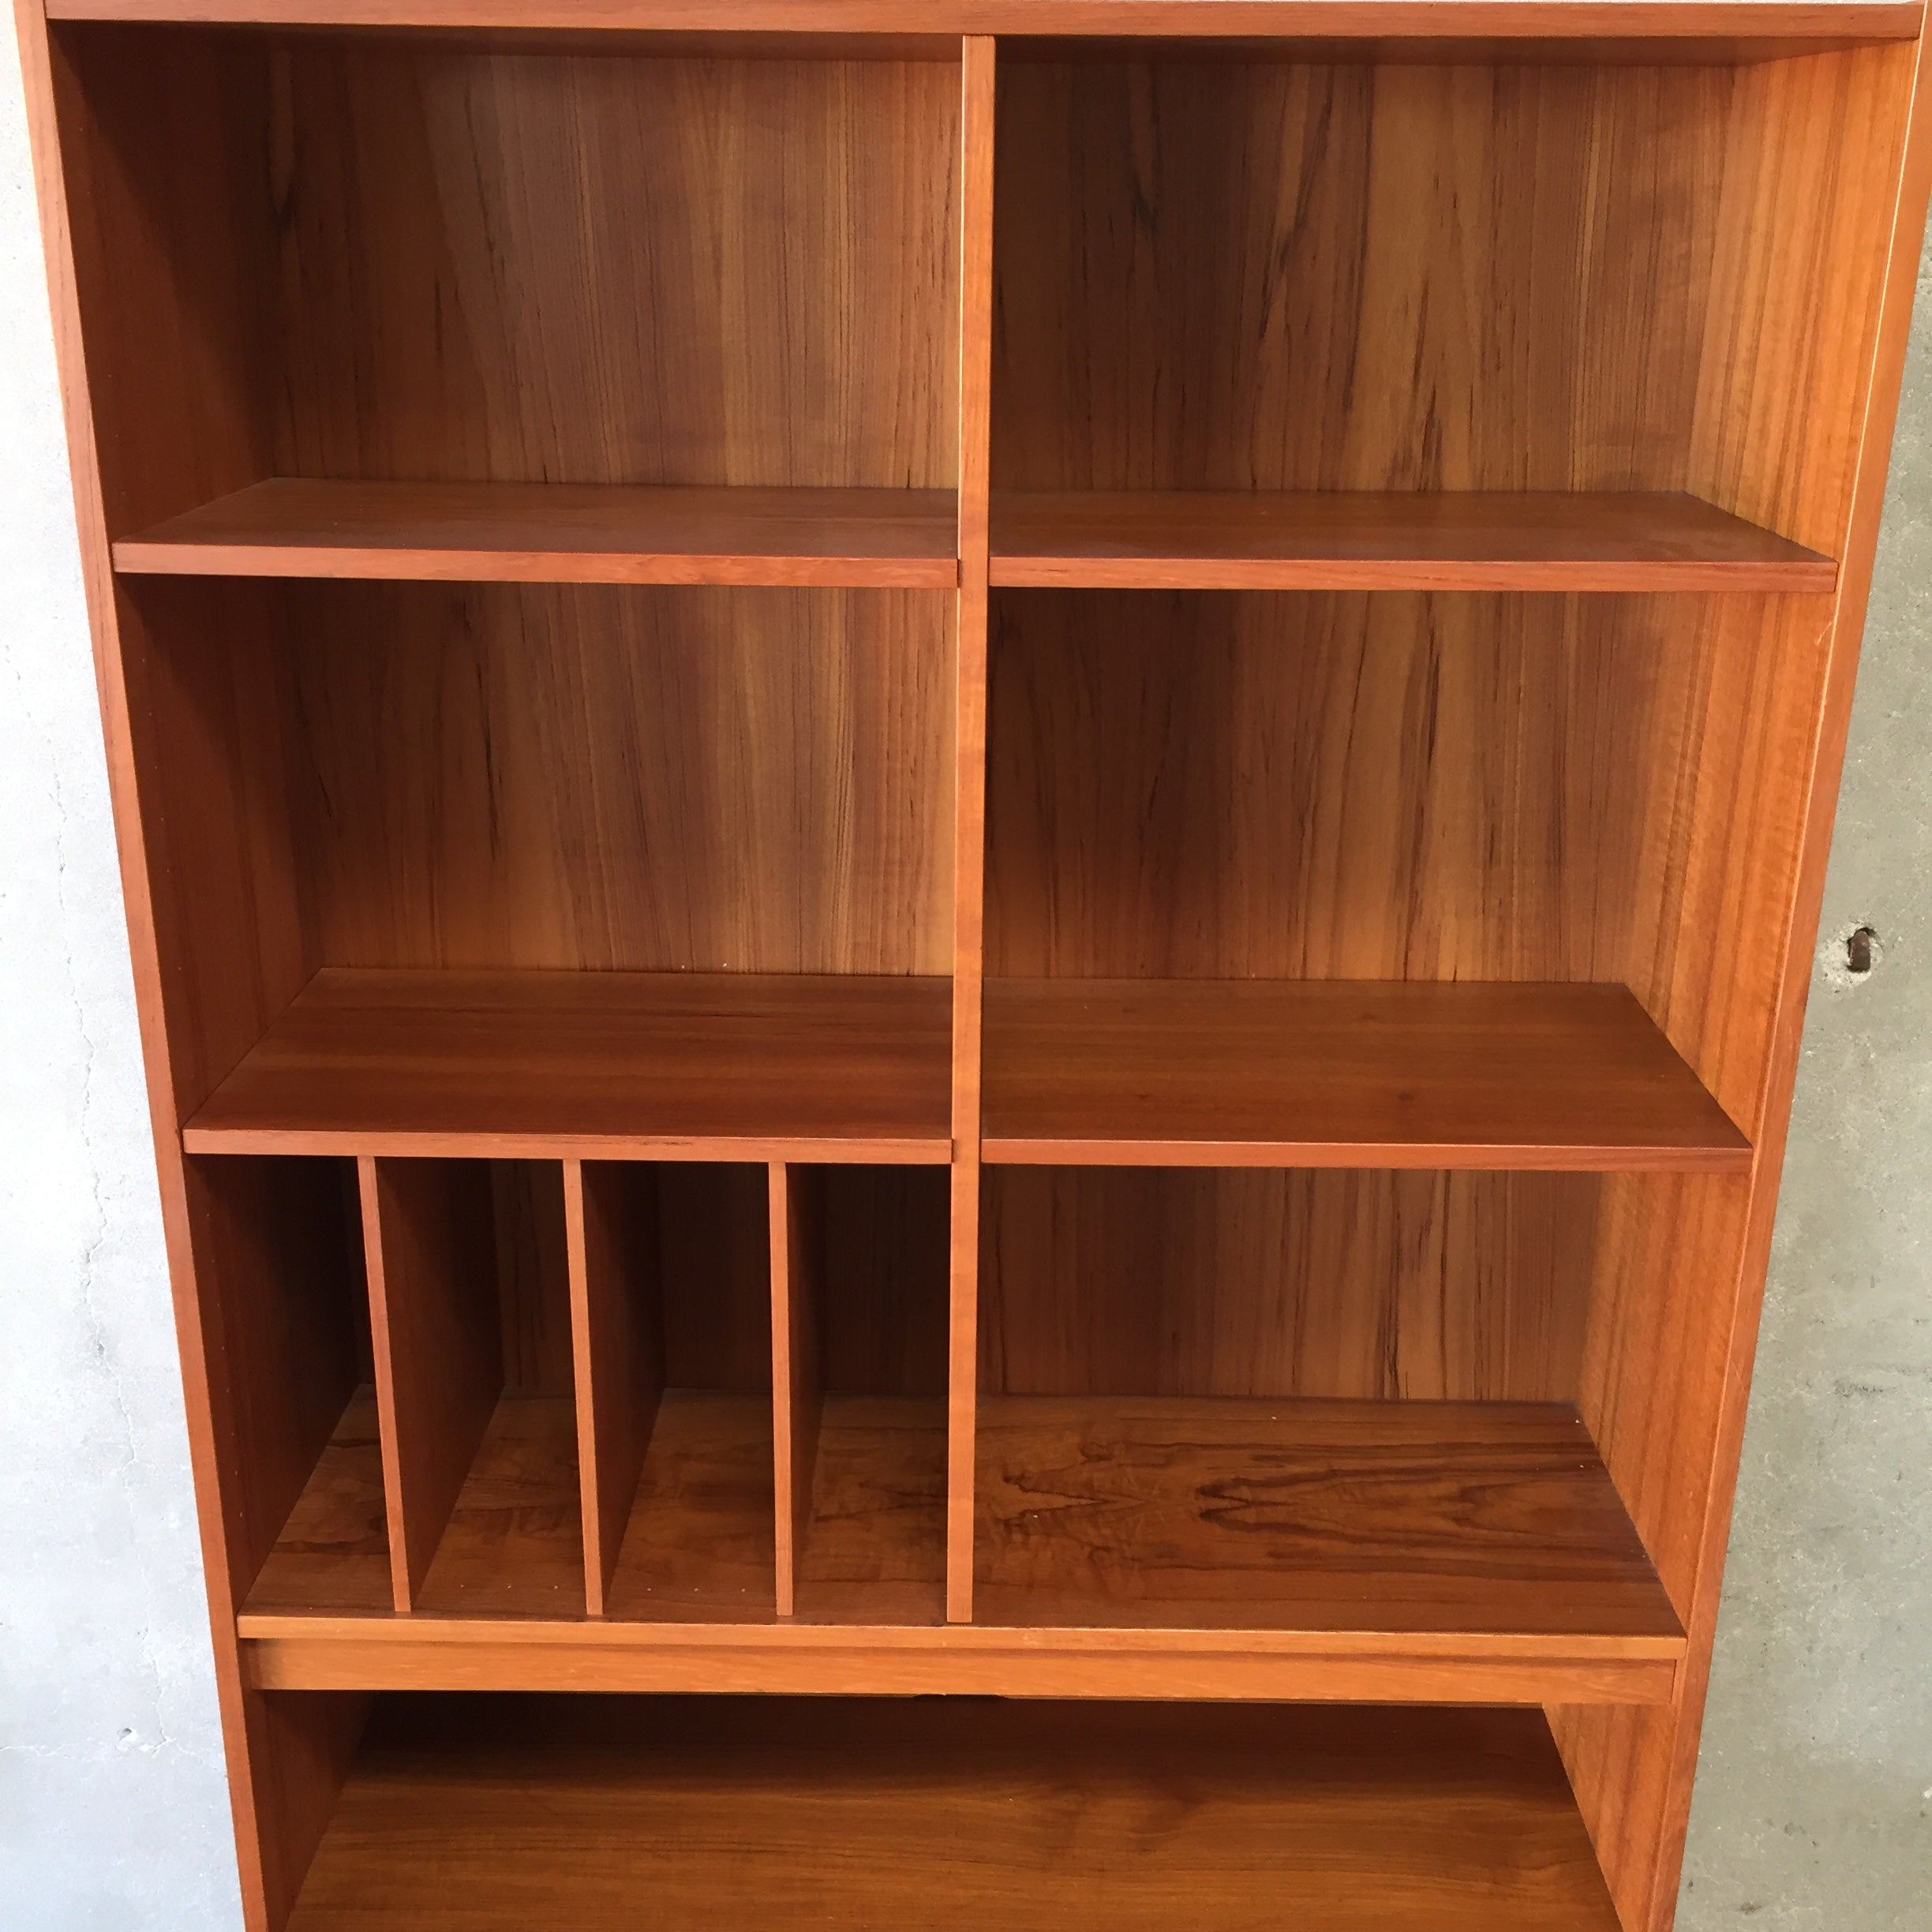 Danish Teak Bookshelf With Cabinet